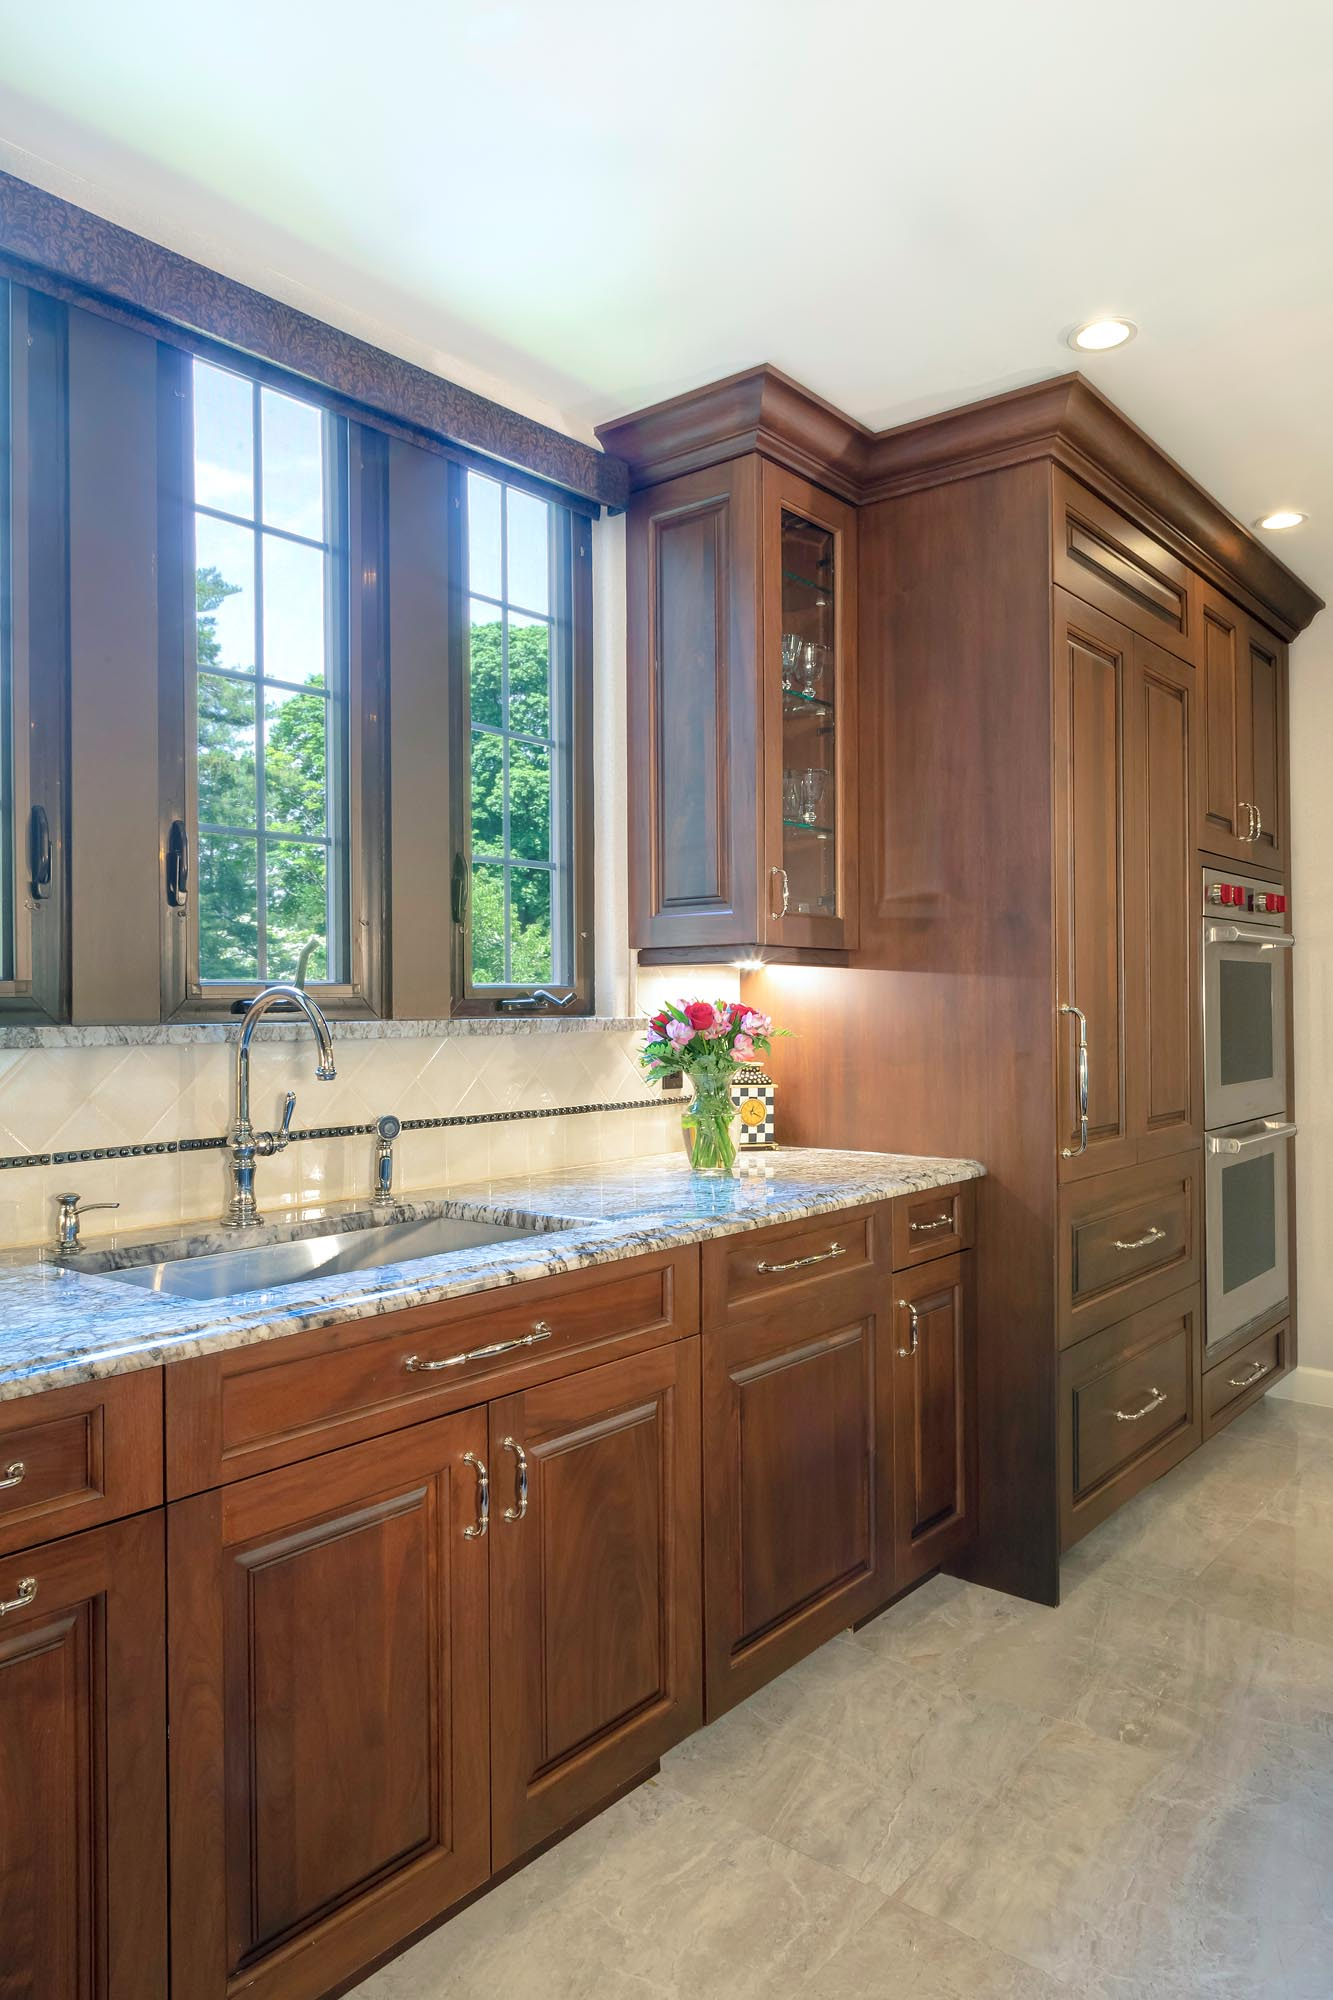 Traditional kitchen with granite countertop